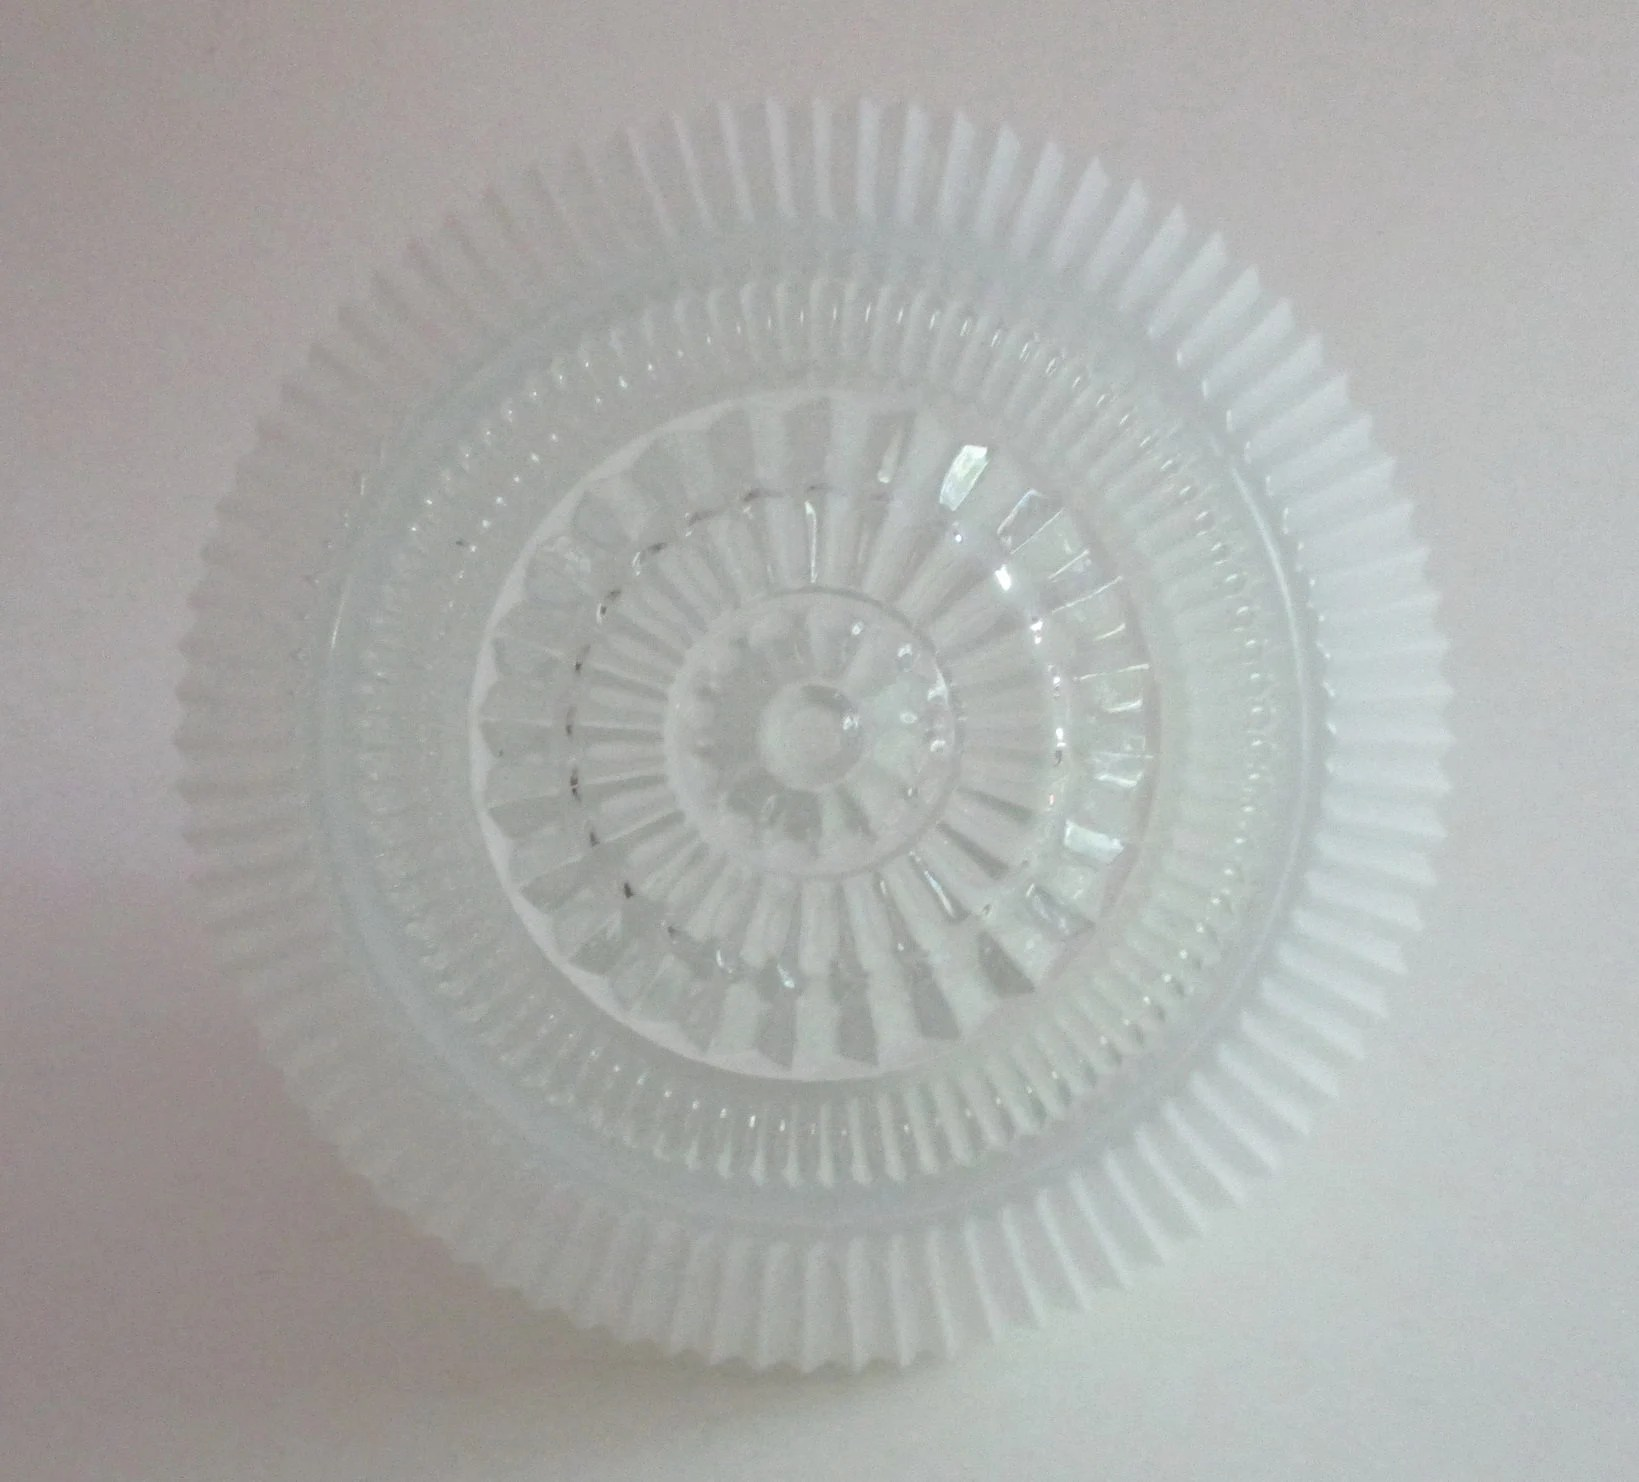 Ceiling Light Covers Vintage Glass Ceiling Light Cover Ribbed White Glass Shade 2 In Opening 6 In Top To Bottom Approx 6 In Dia At Widest